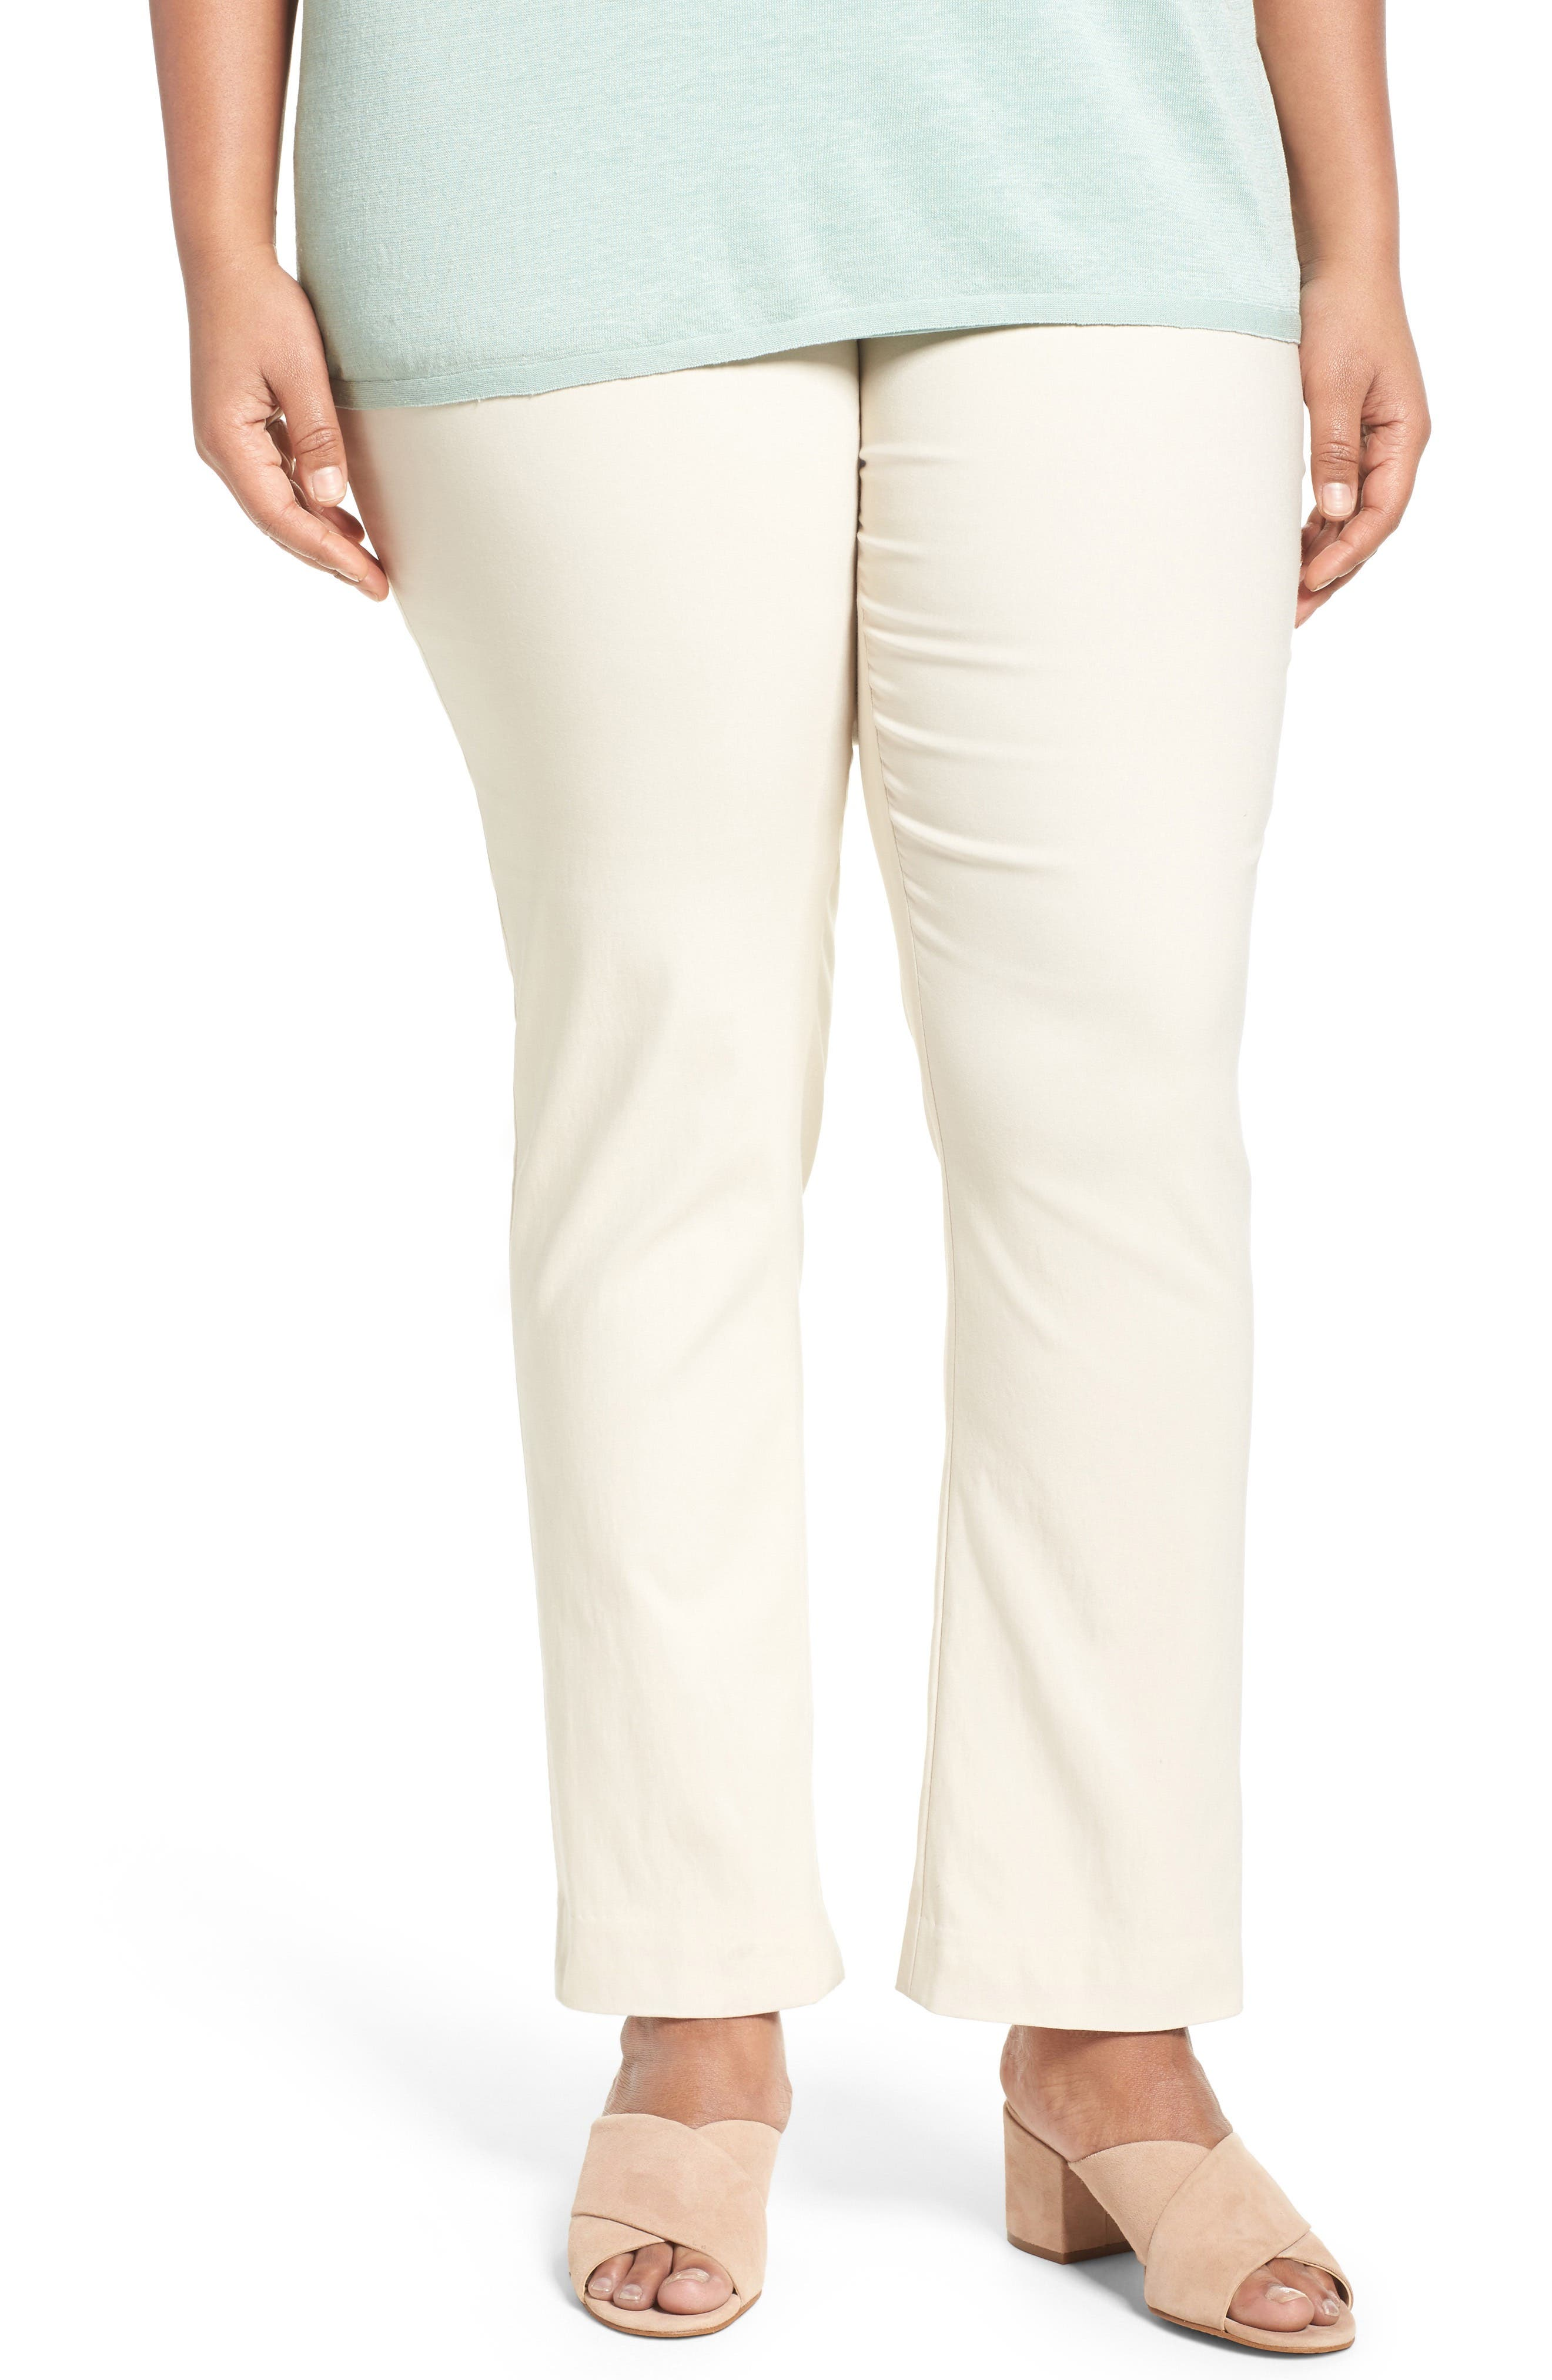 Versatile straight-leg pants are designed for a clean, smooth fit with exceptional stretch comfort. Style Name: Nic+Zoe \\\'Wonder Stretch\\\' High Rise Straight Leg Pants (Plus Size). Style Number: 848392 4. Available in stores.